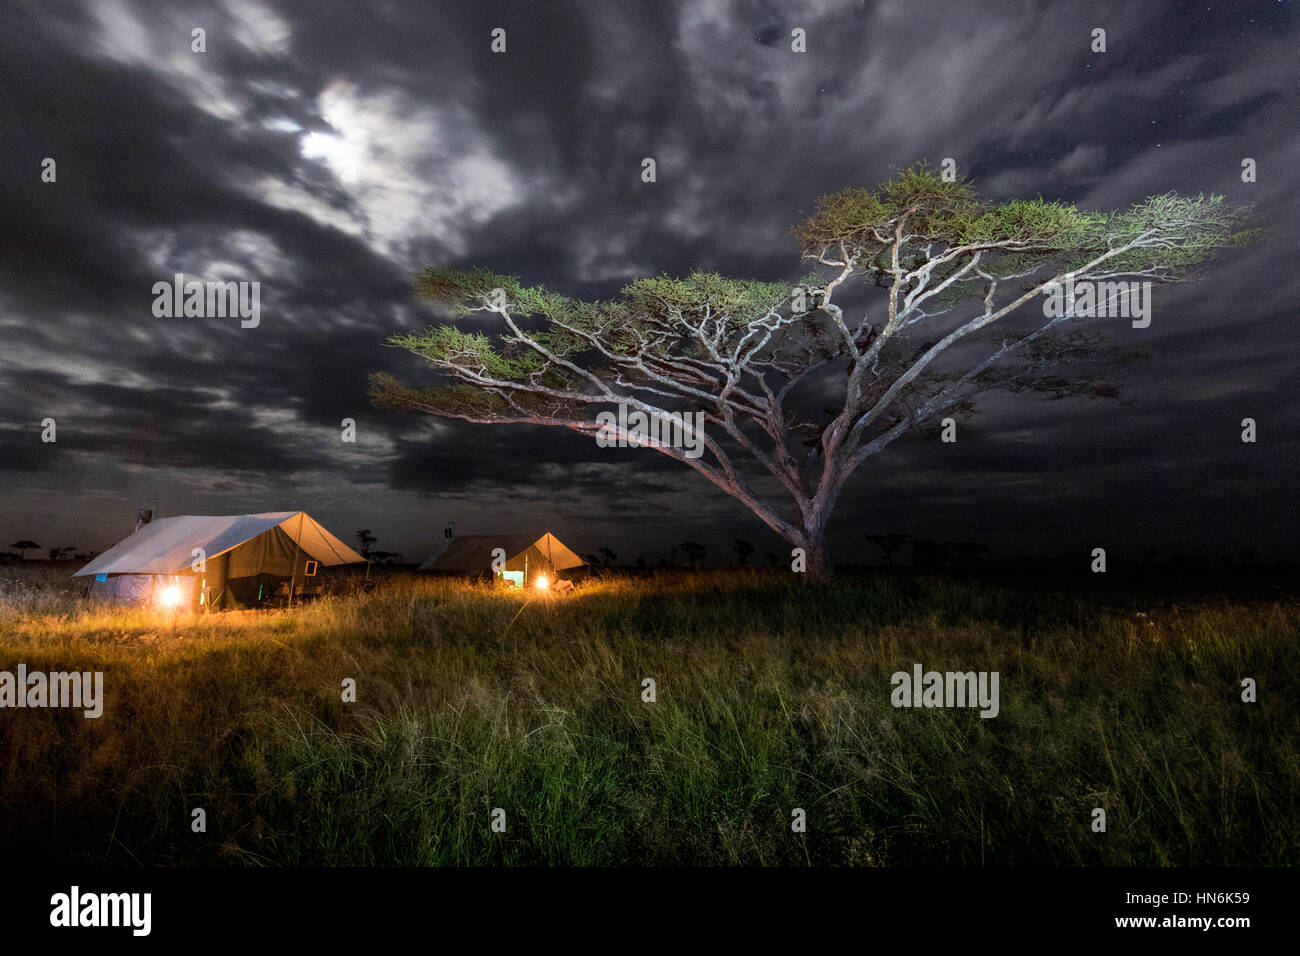 Nightscape landscape photo of camping in the Serengeti National Park, Tanzania, Africa - Stock Image